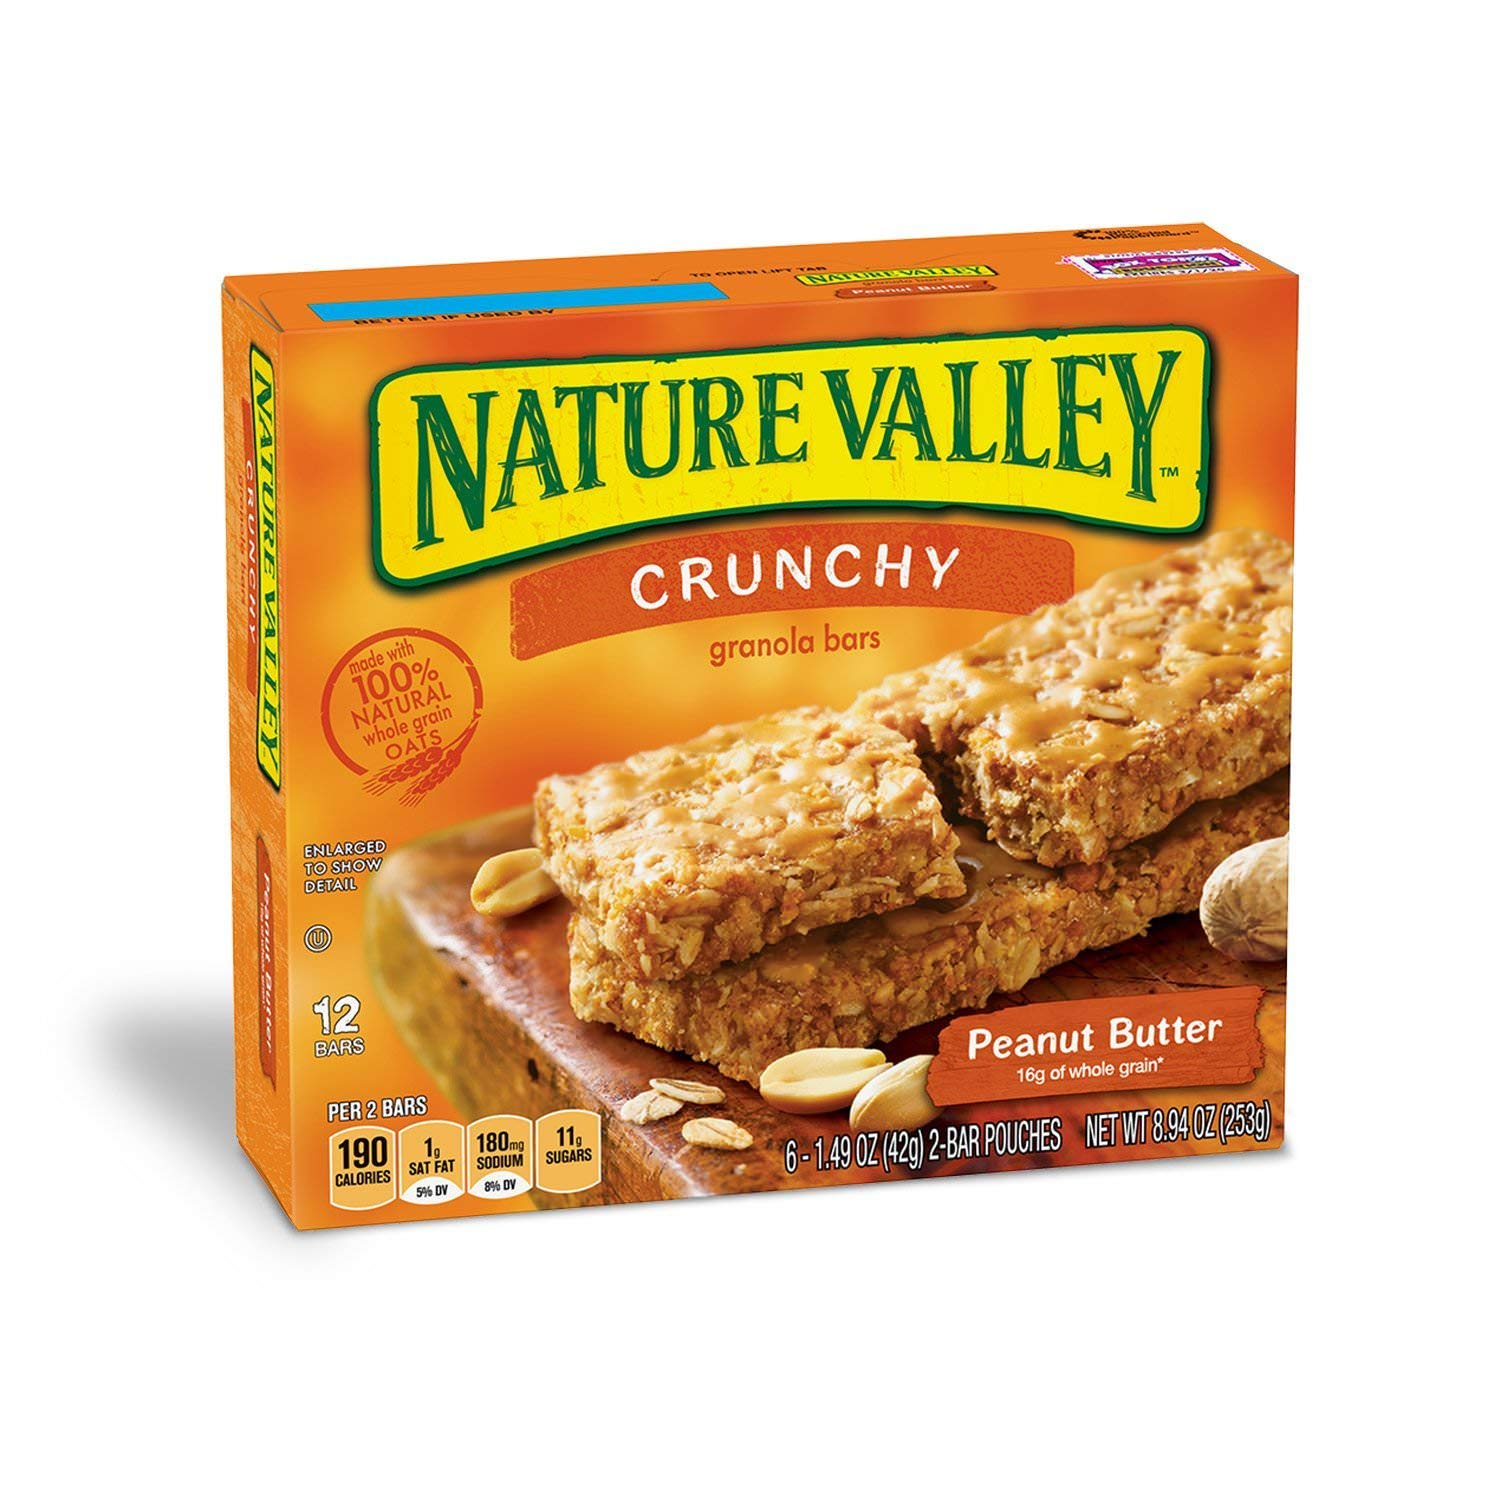 Nature Valley Granola Bars, Crunchy, Peanut Butter, 1.49 Ounce, 12 Bars (12 Boxes) by Nature Valley